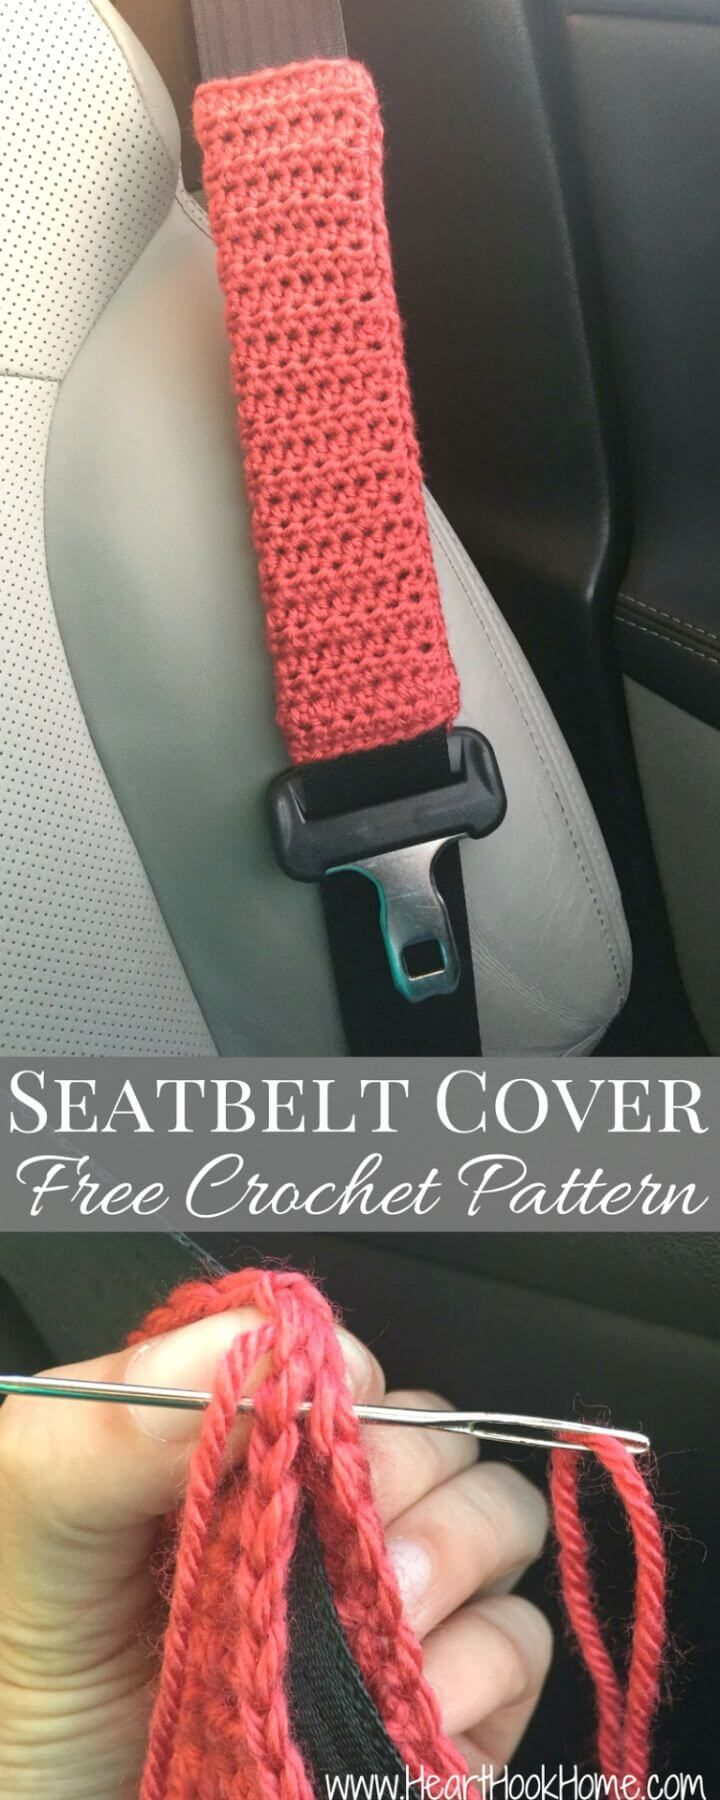 Easy Crochet Seat-belt Cover – Free Pattern - Crochet Belt Patterns - 44 Free Tutorials - DIY & Crafts